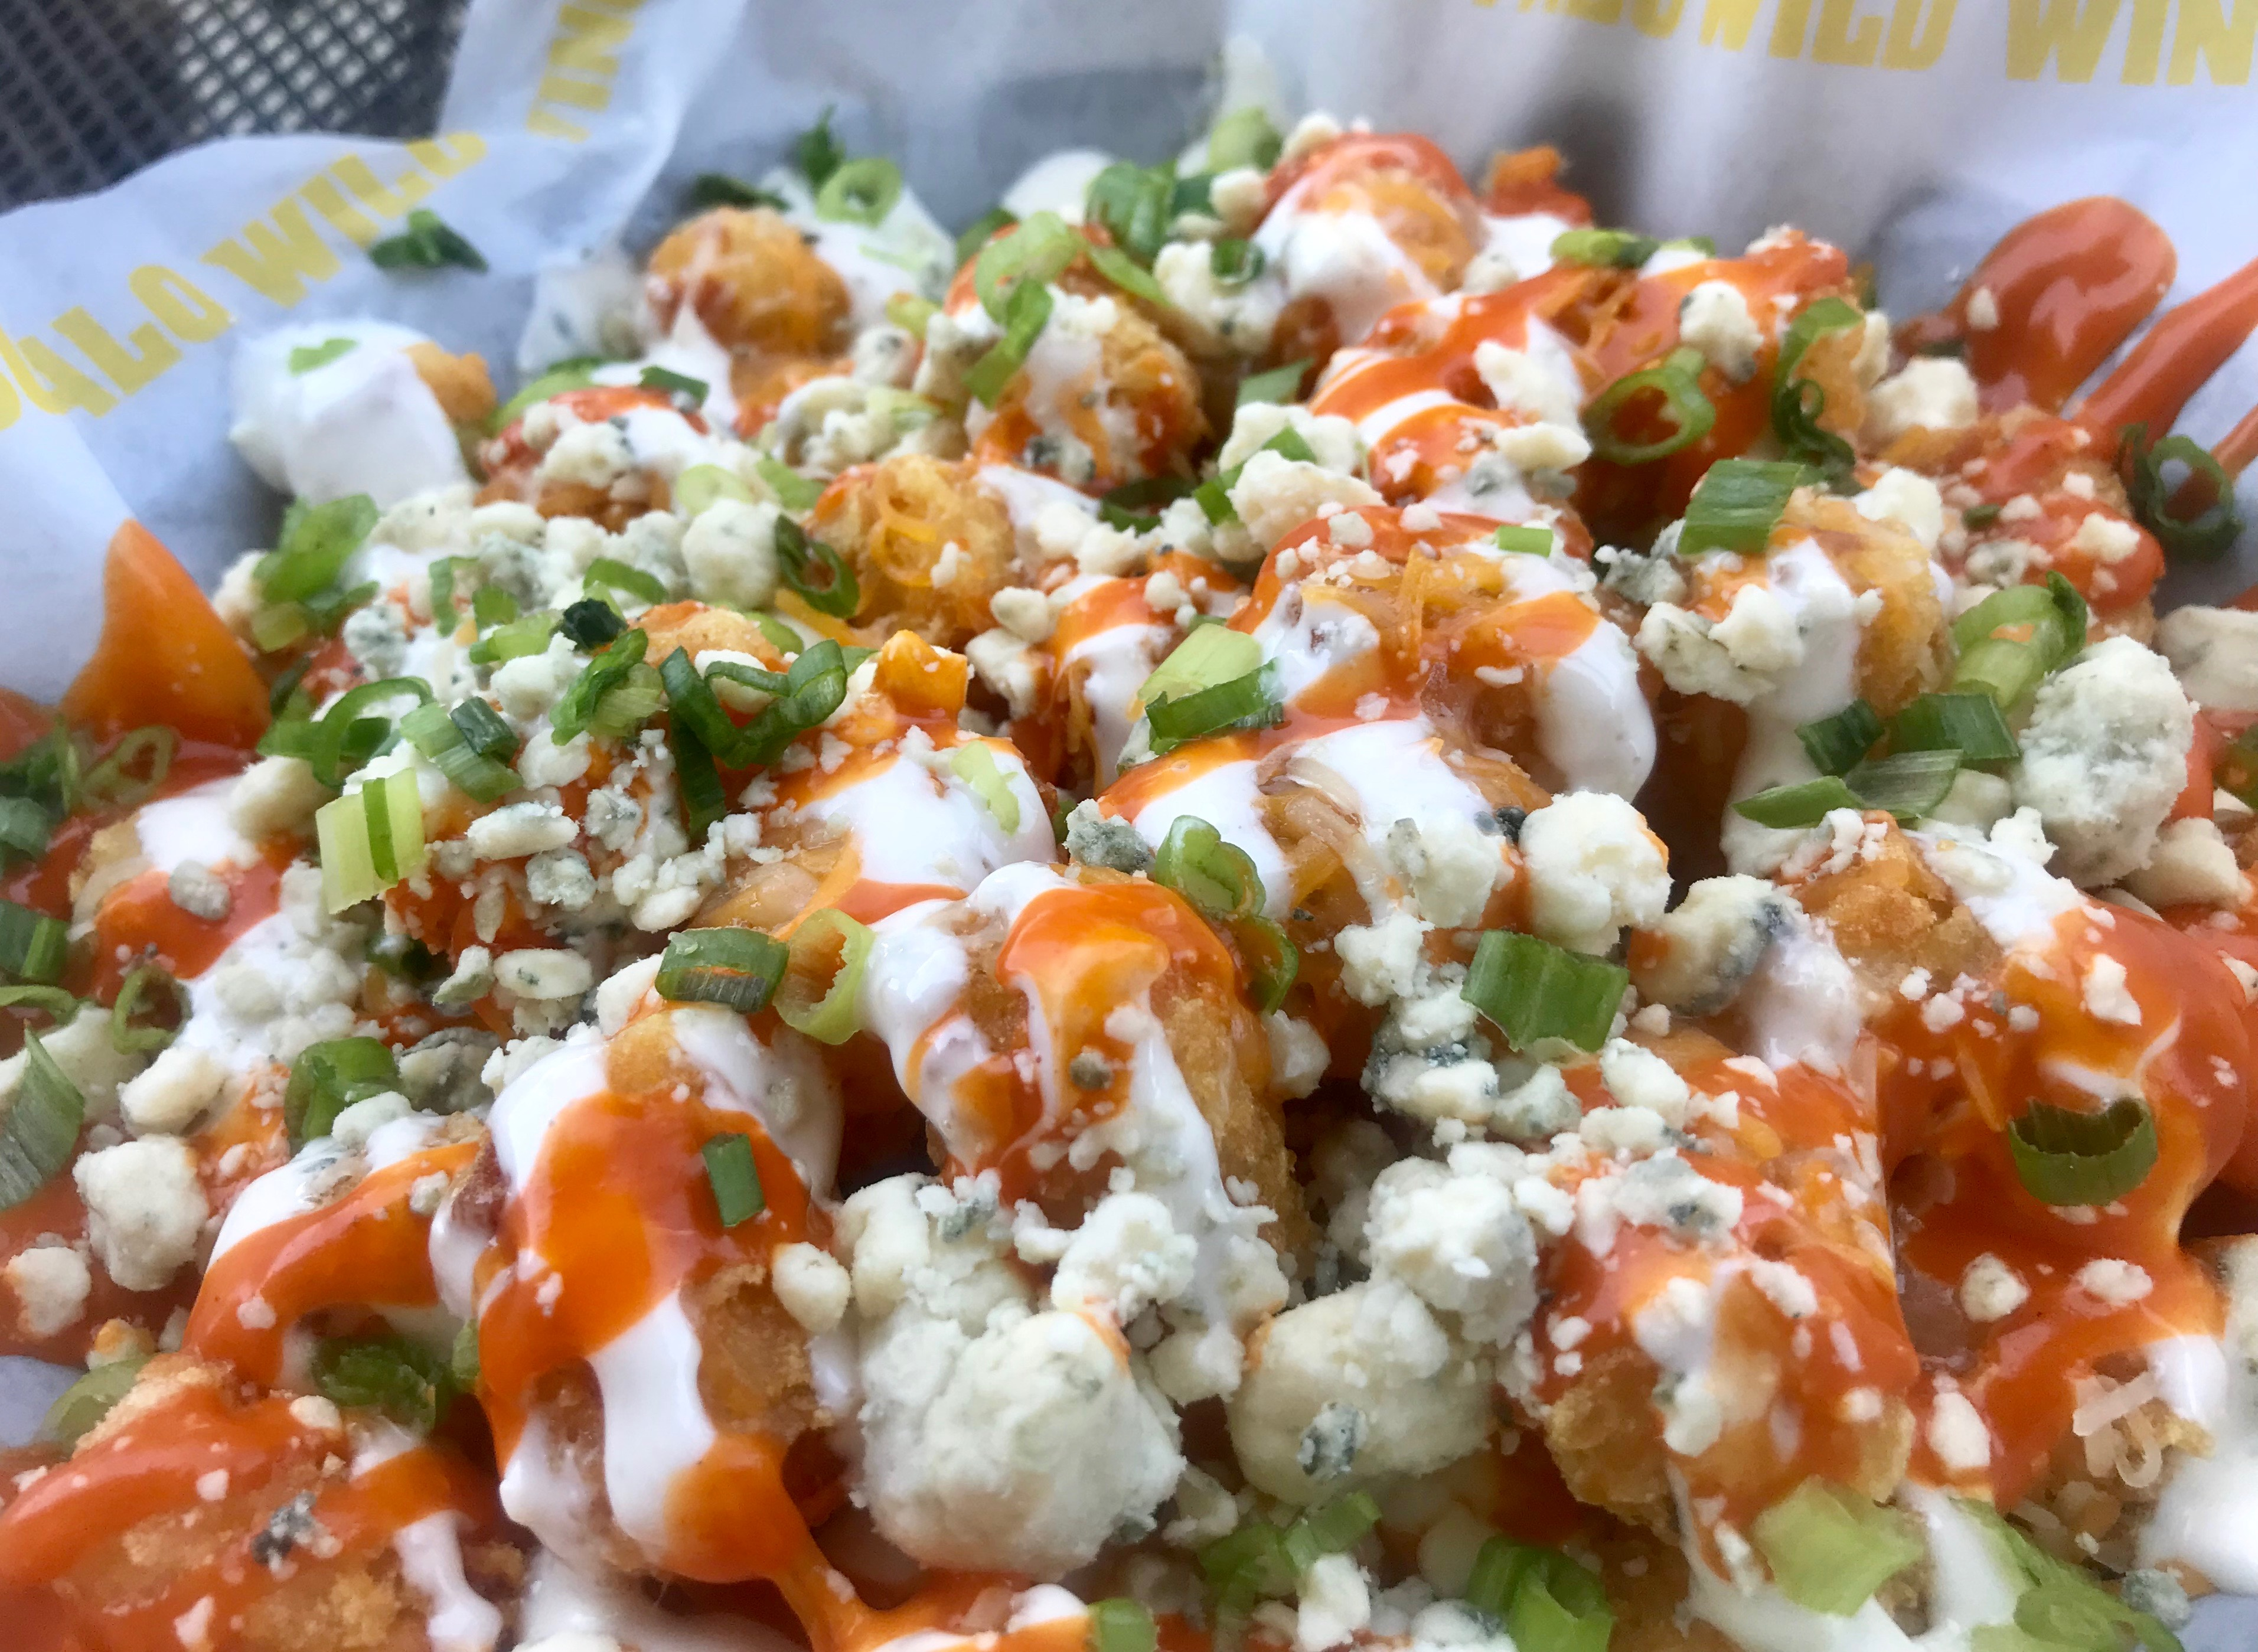 The Return of a Favorite: Buffalo Tater Tots